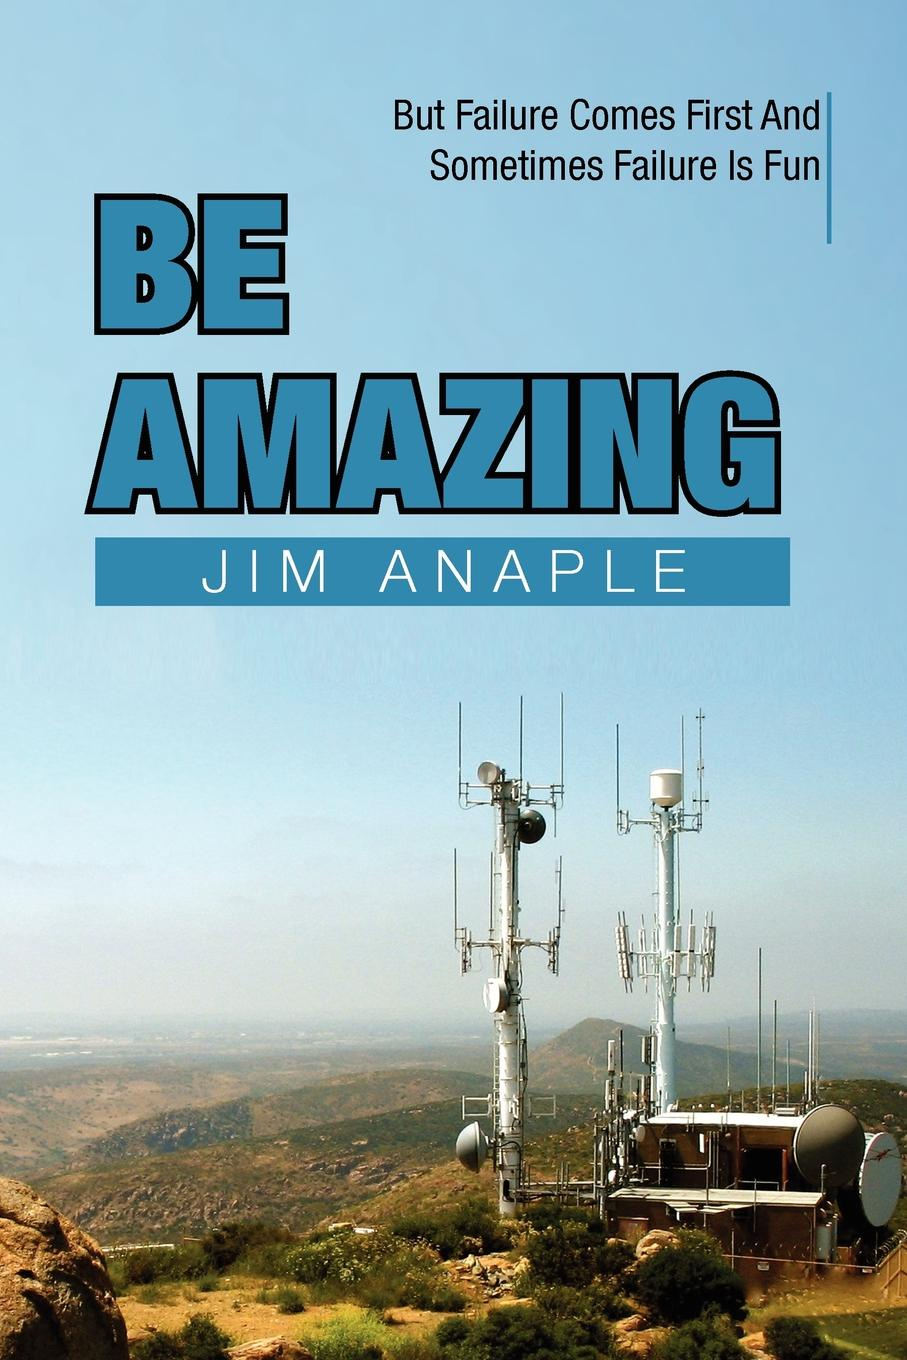 Jim Anaple Be Amazing. But Failure Comes First and Sometimes Is Fun